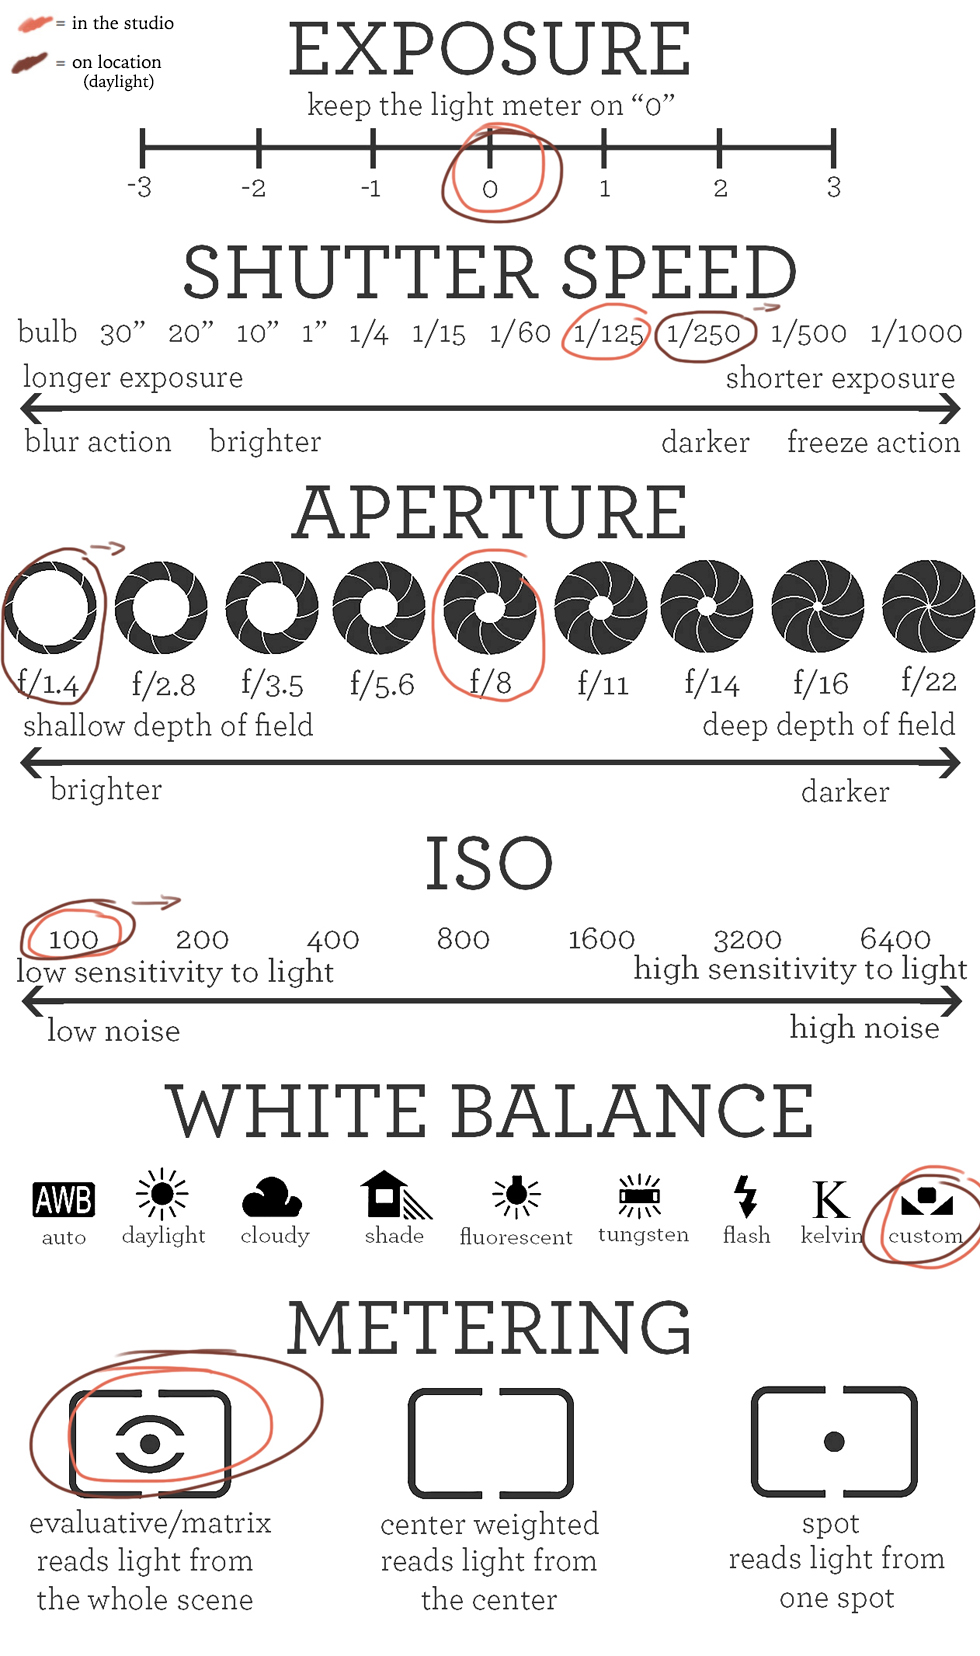 Cheat Sheet Manual Photography - The Fashion Camera